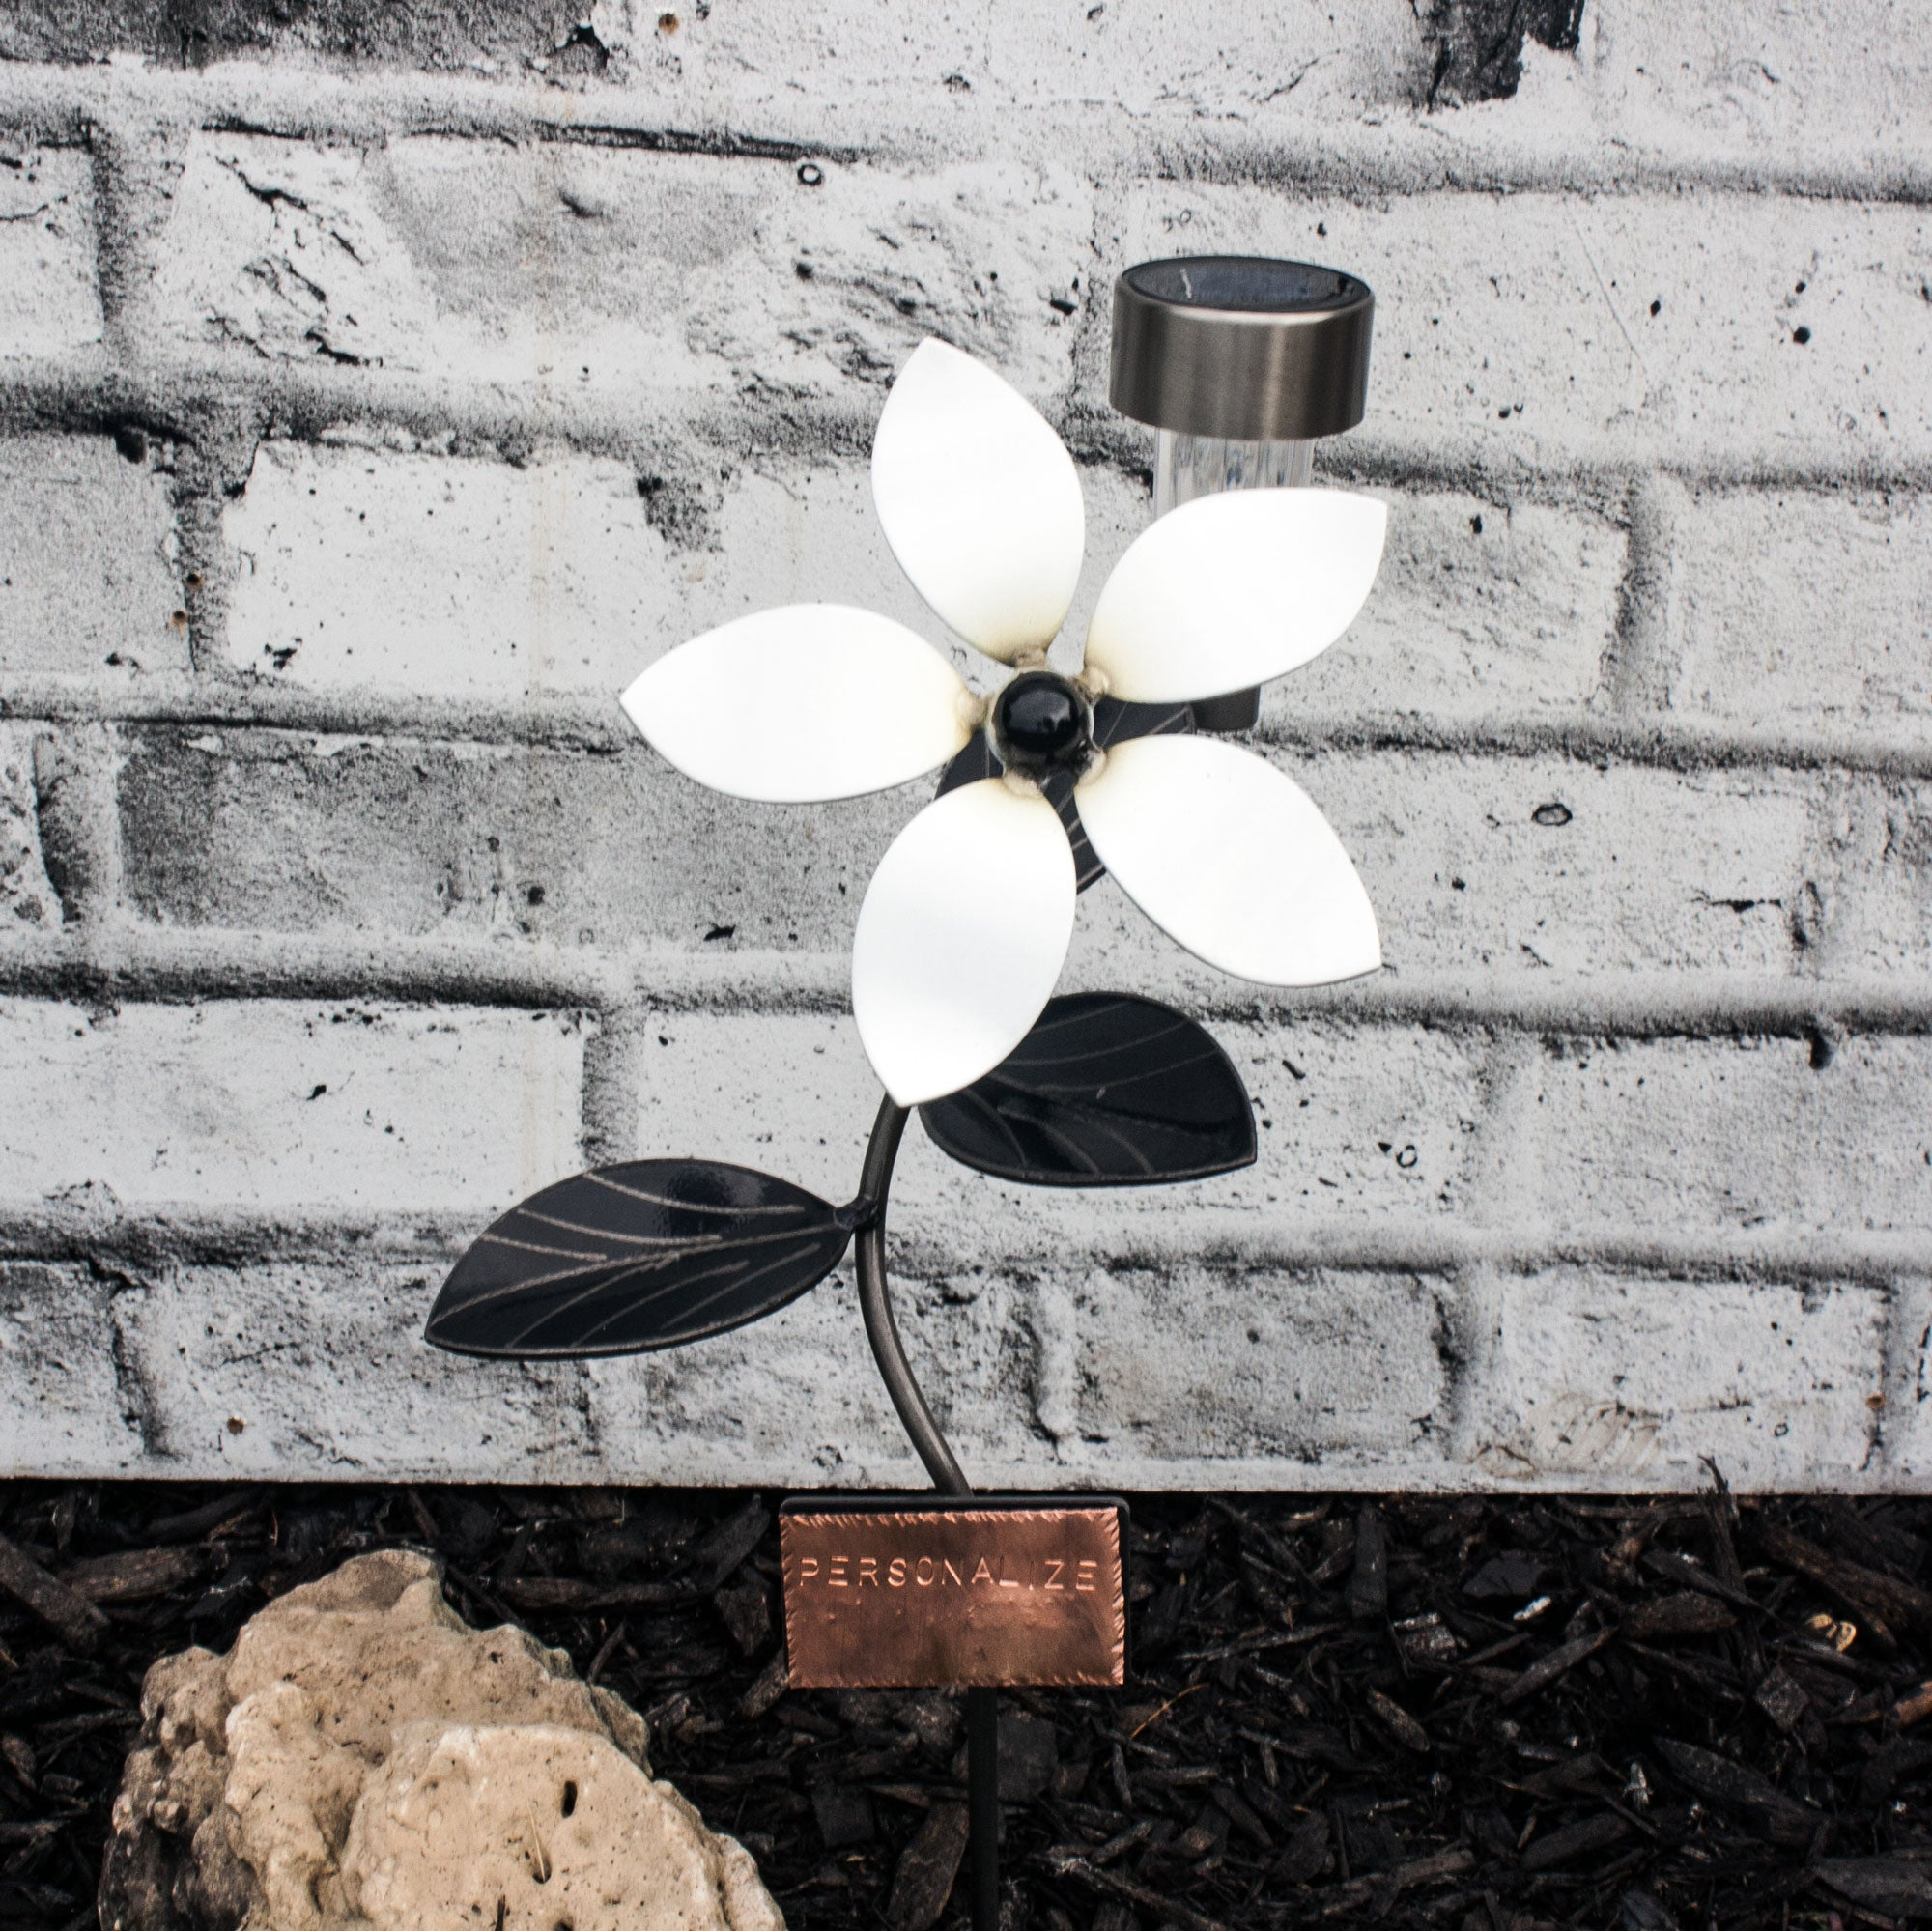 Metal Garden Art Flower Sculpture including customized plate